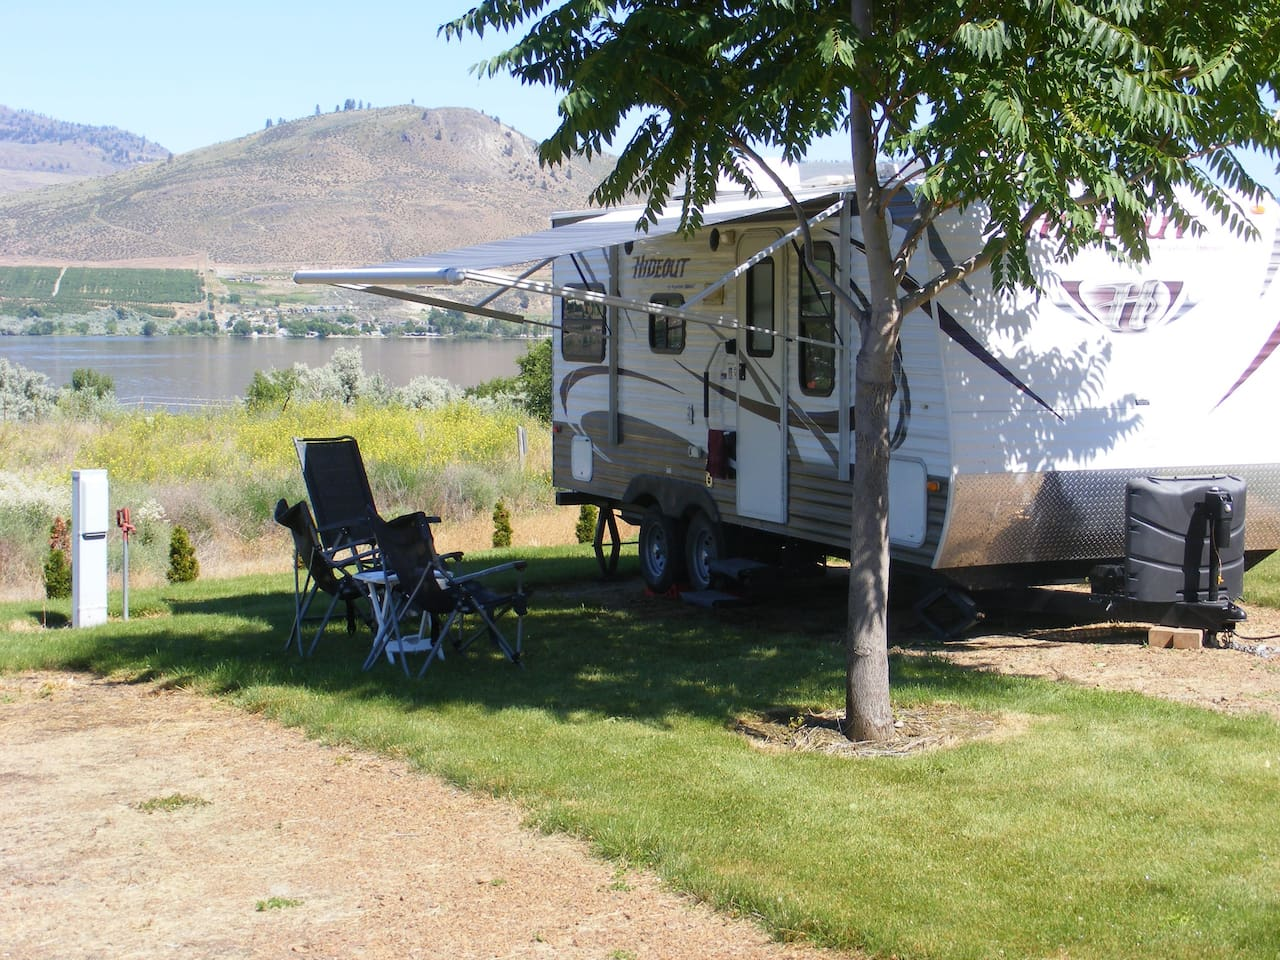 Sample location at Bains RV Park, but I can deliver it anywhere.